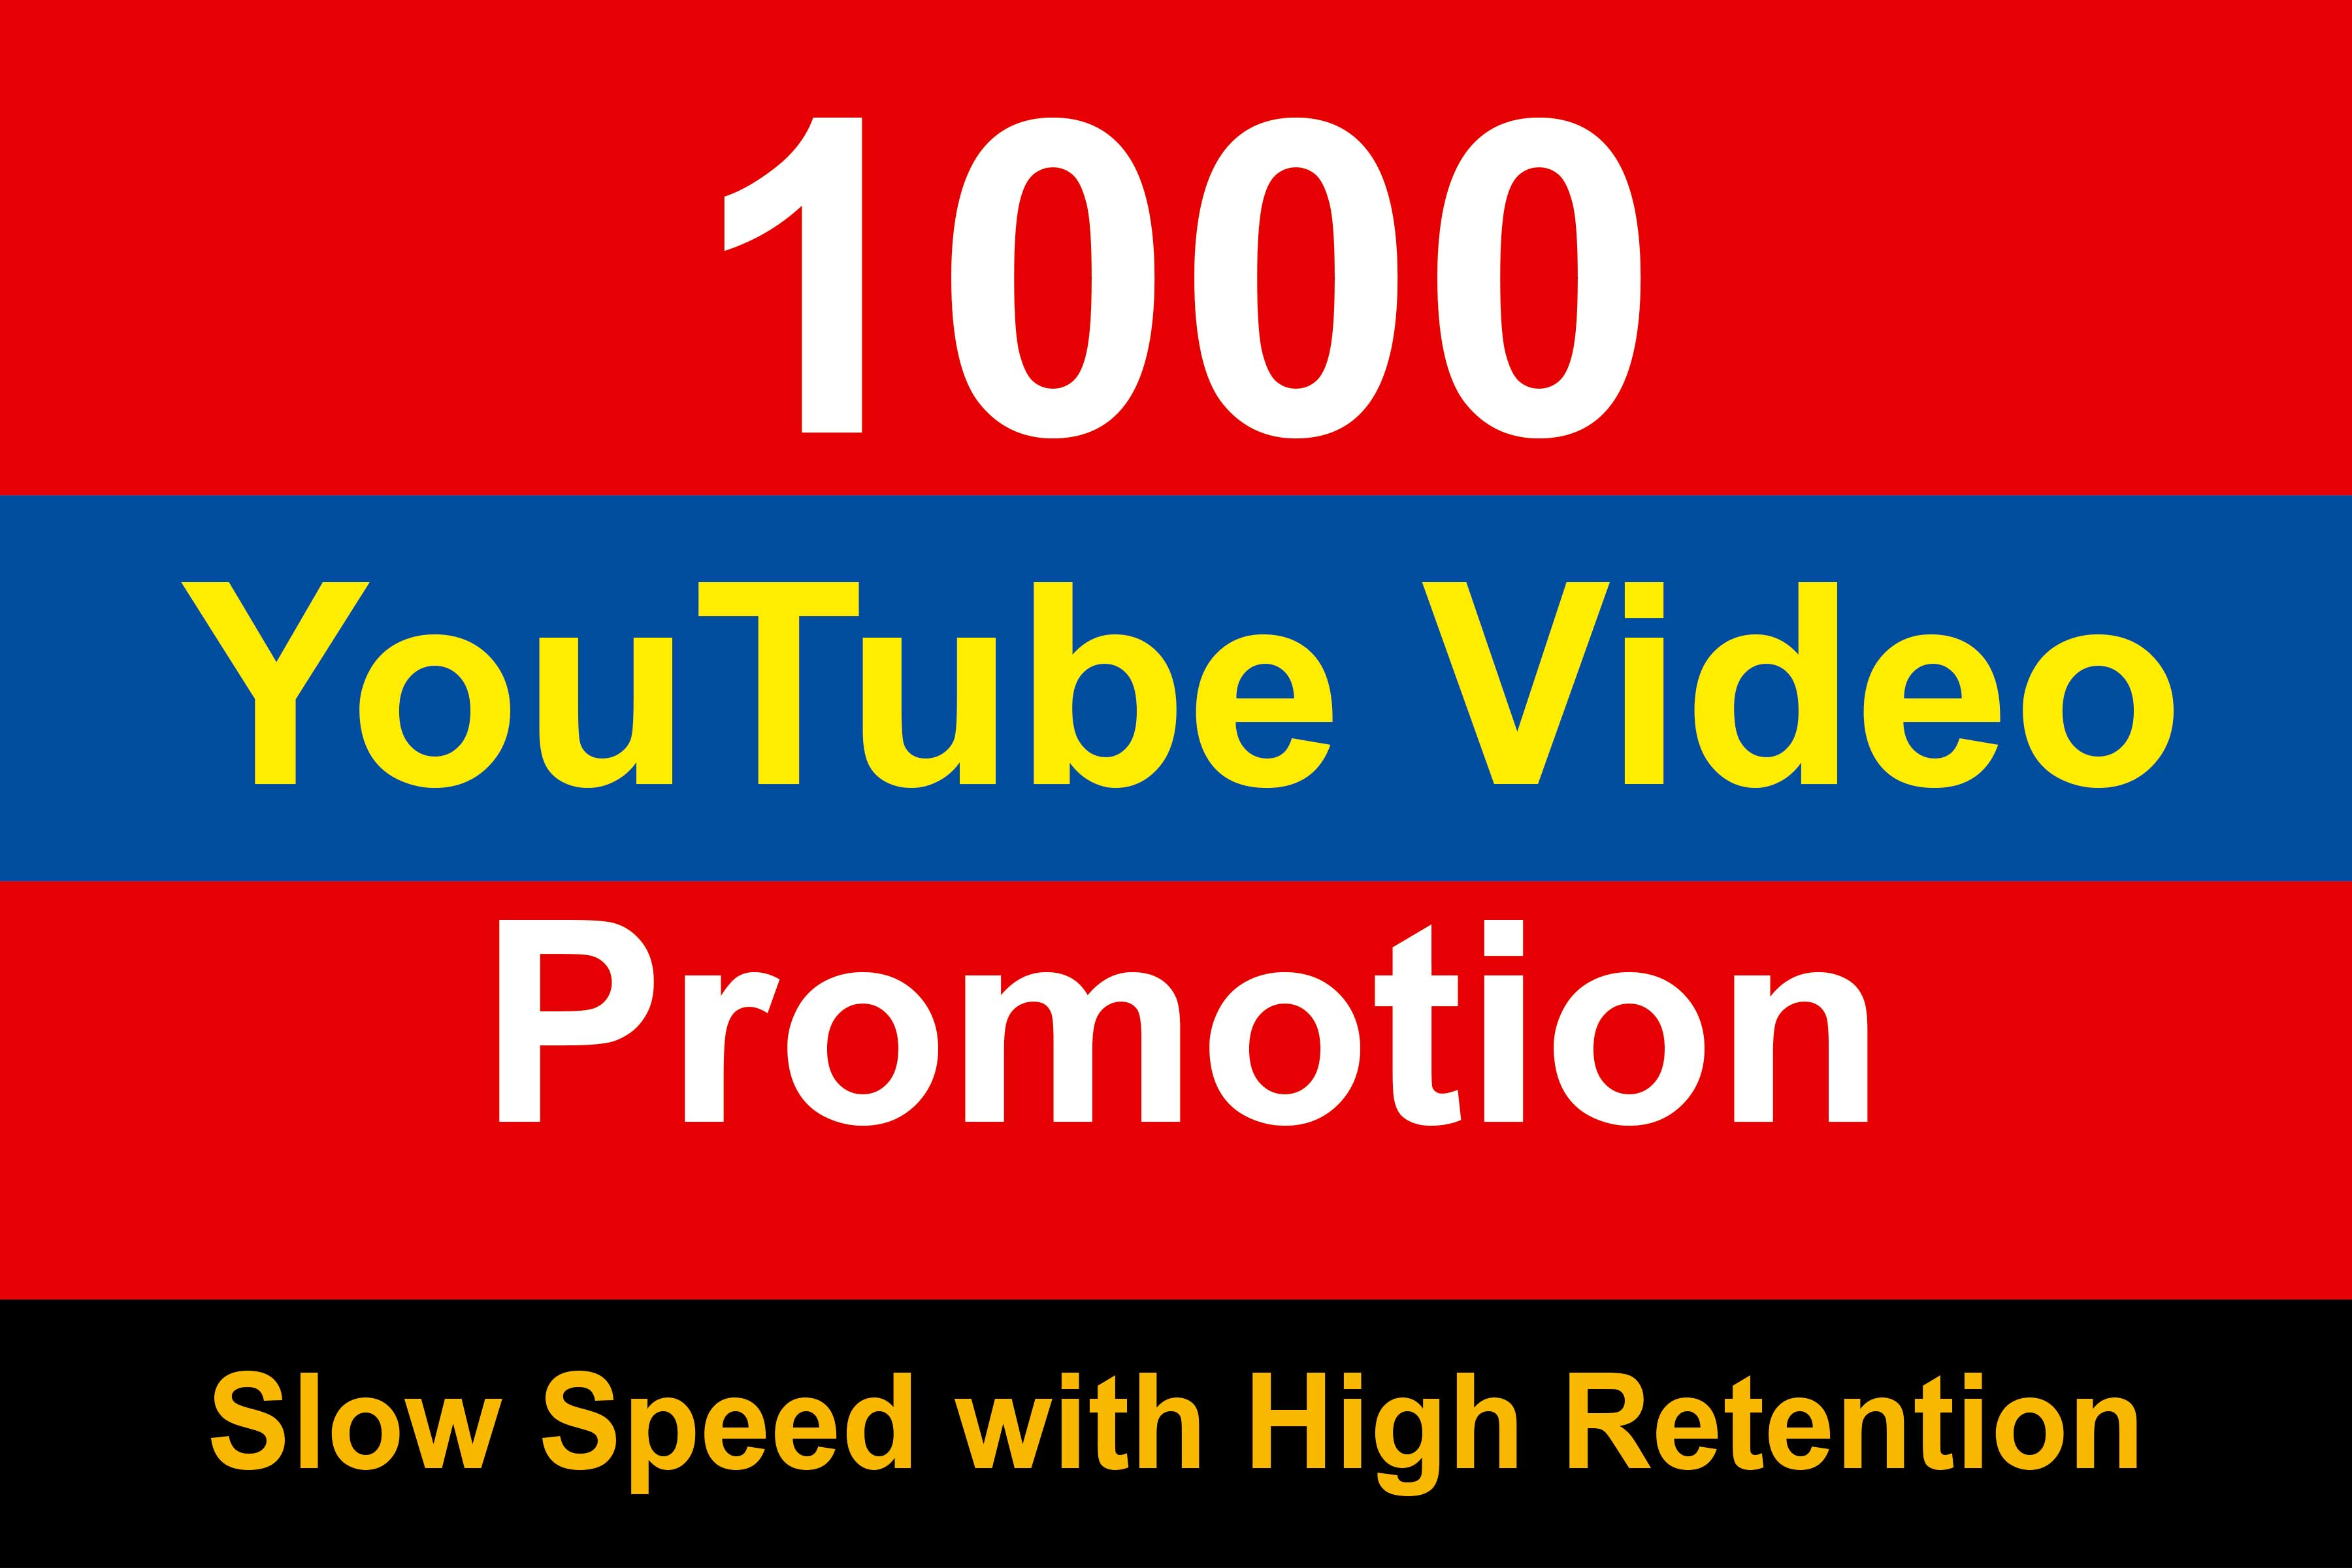 Organic High Quality YouTube Video Promotions slow speed